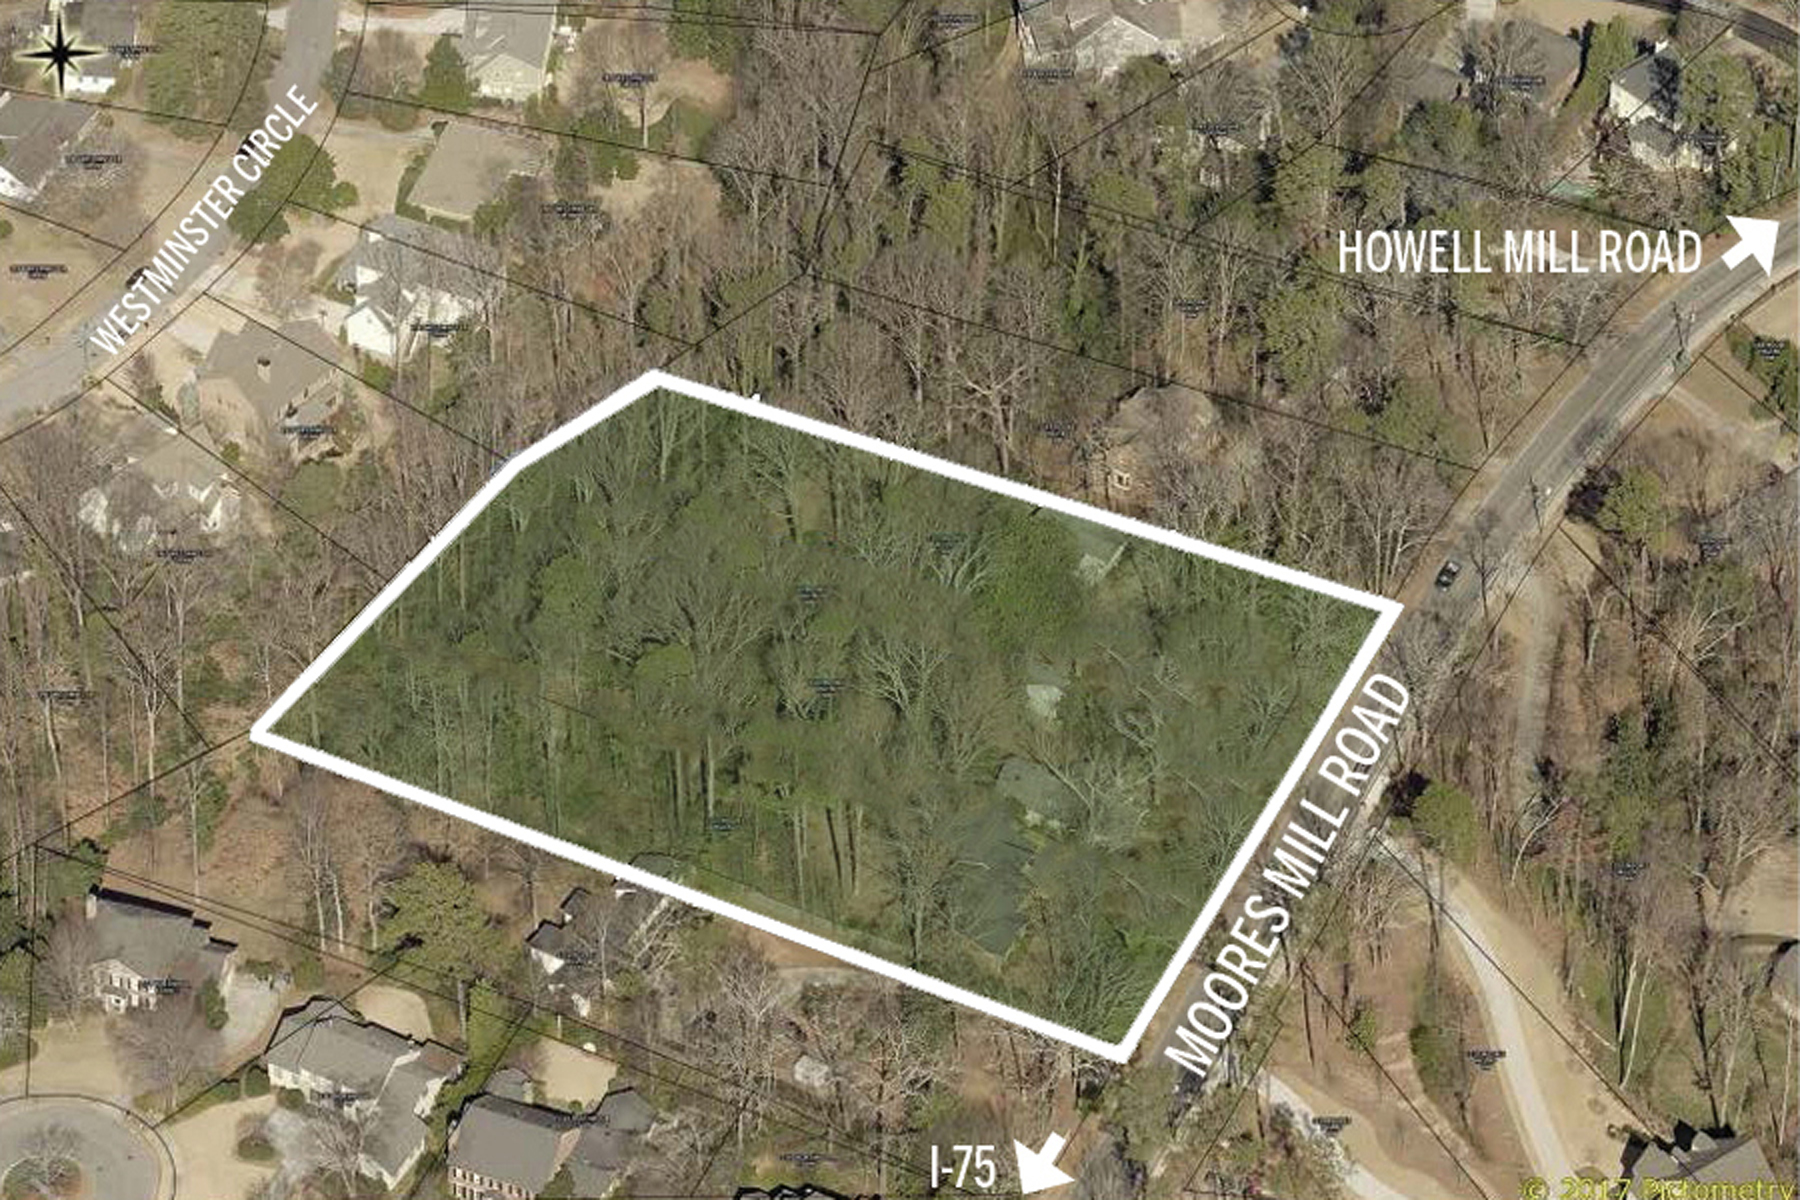 Terreno por un Venta en Assemblage - Potential For 5-6 Lots 1105 Moores Mill Road NW Atlanta, Georgia 30327 Estados Unidos